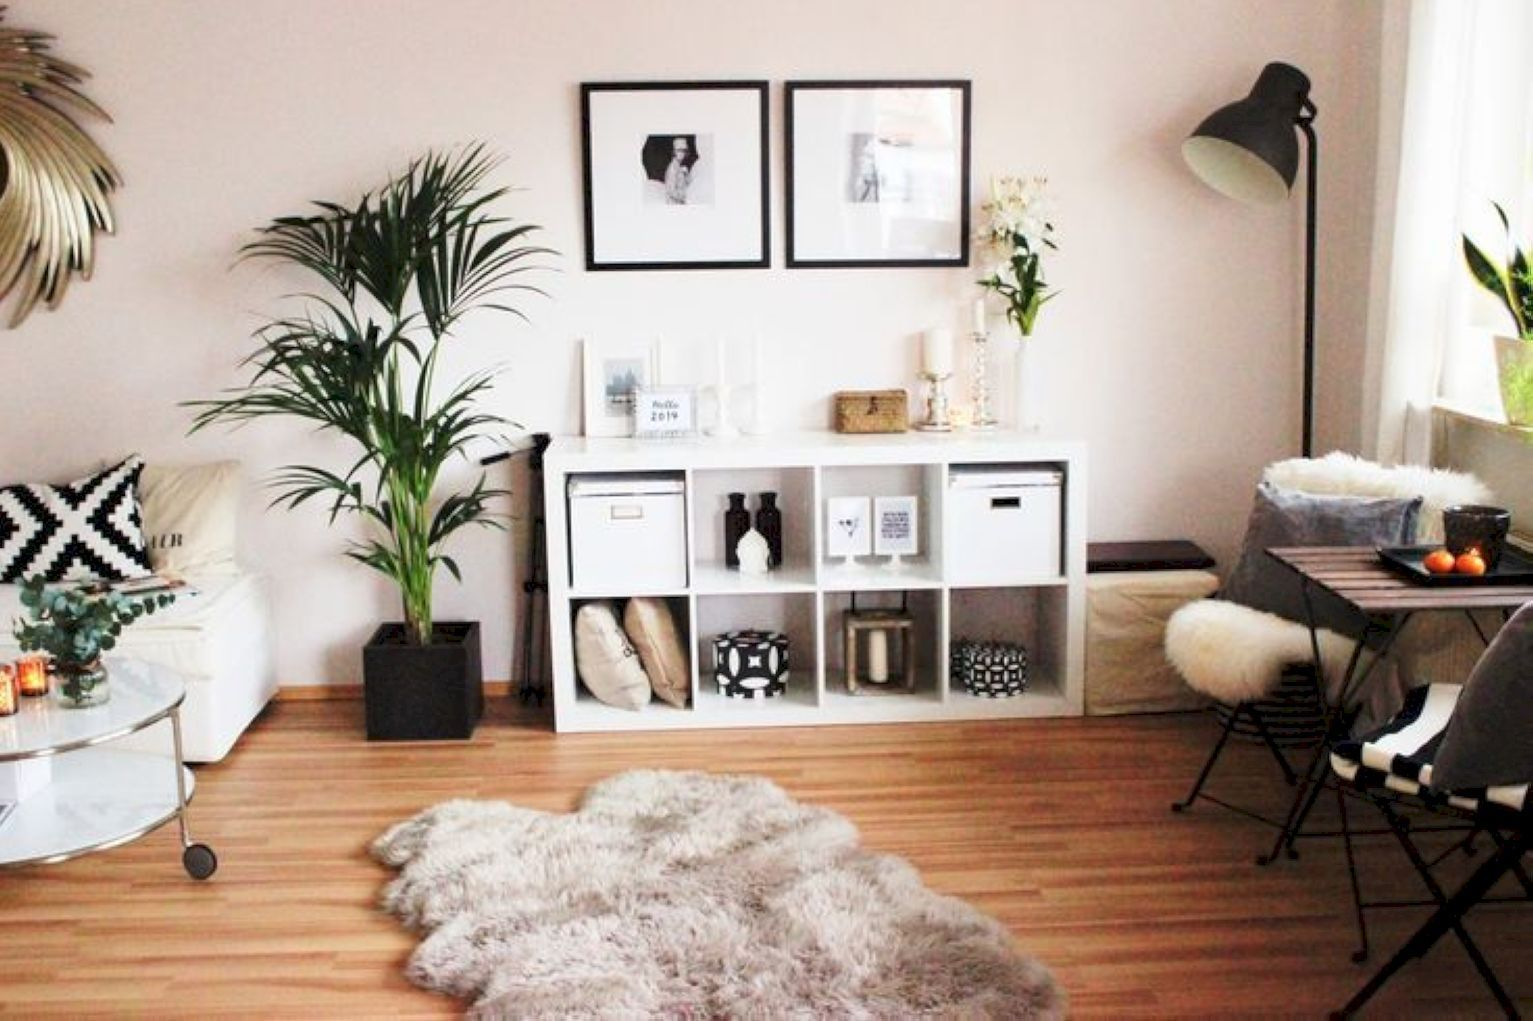 Minimalist Storage Ideas